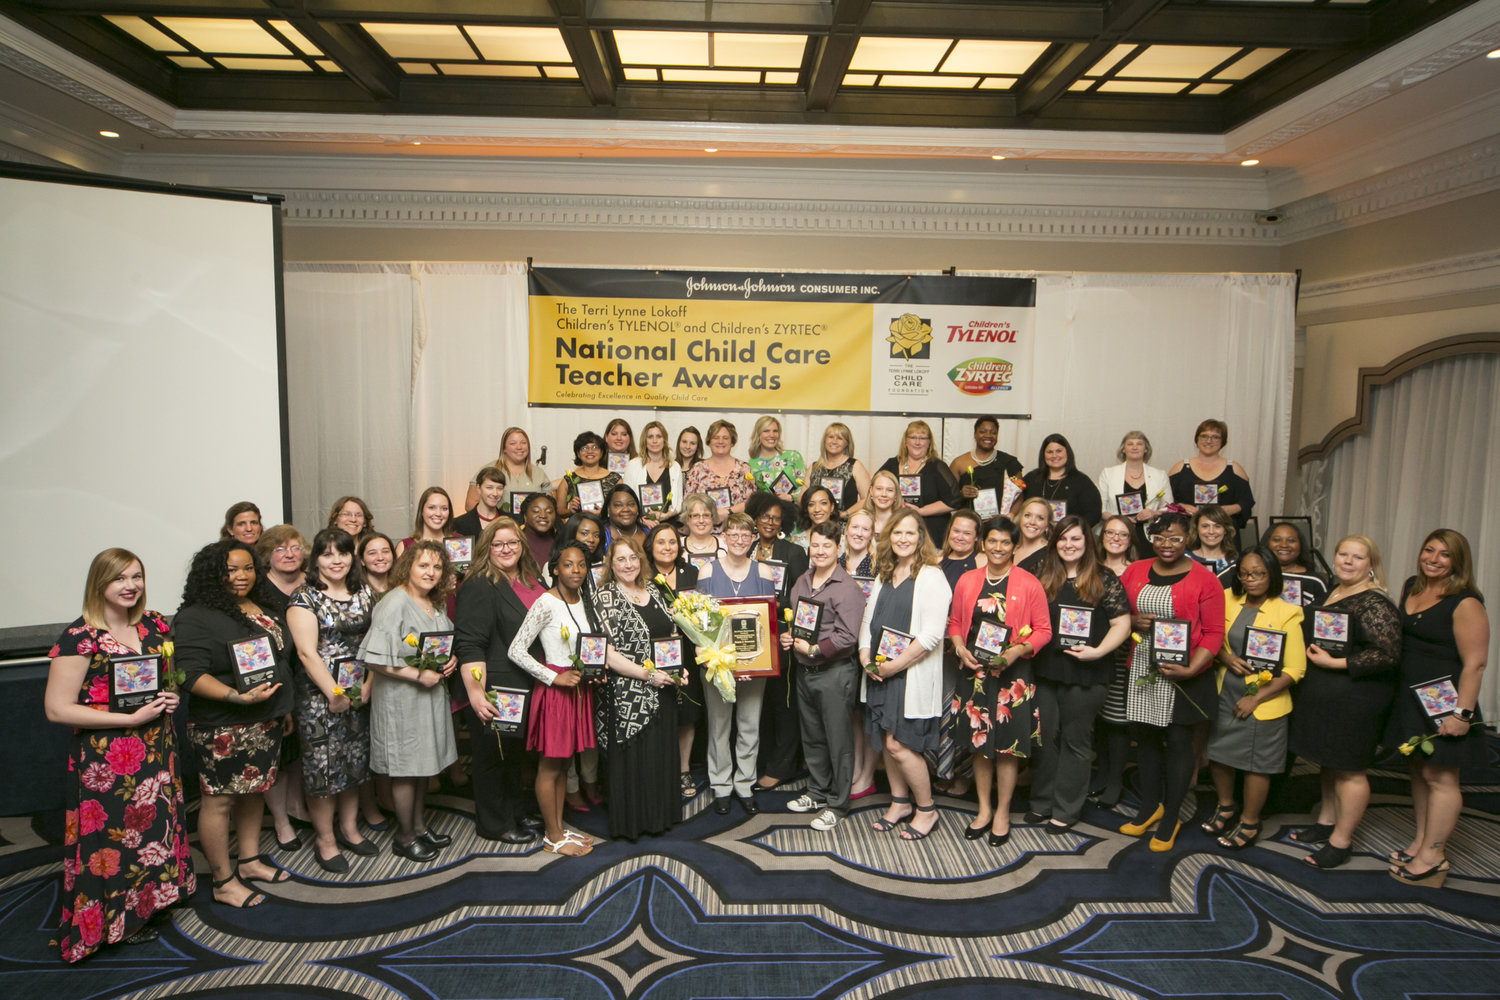 Recipients The Terri Lynne Lokoff Child Care Foundation